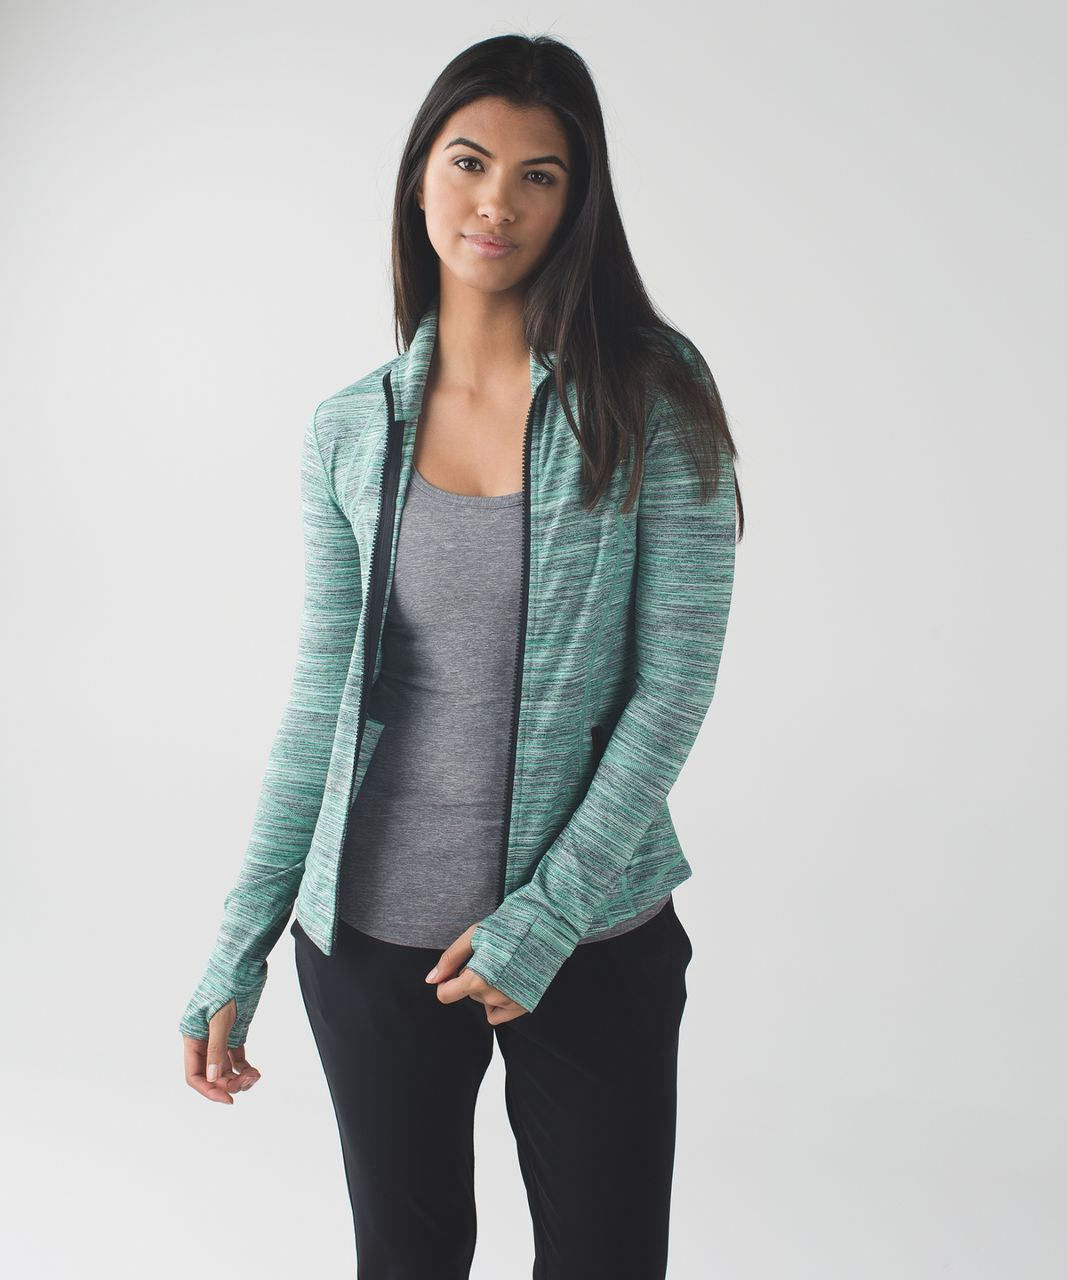 c191f30d93f6d Lululemon Define Jacket - Space Dye Camo Forage Teal Black - lulu ...